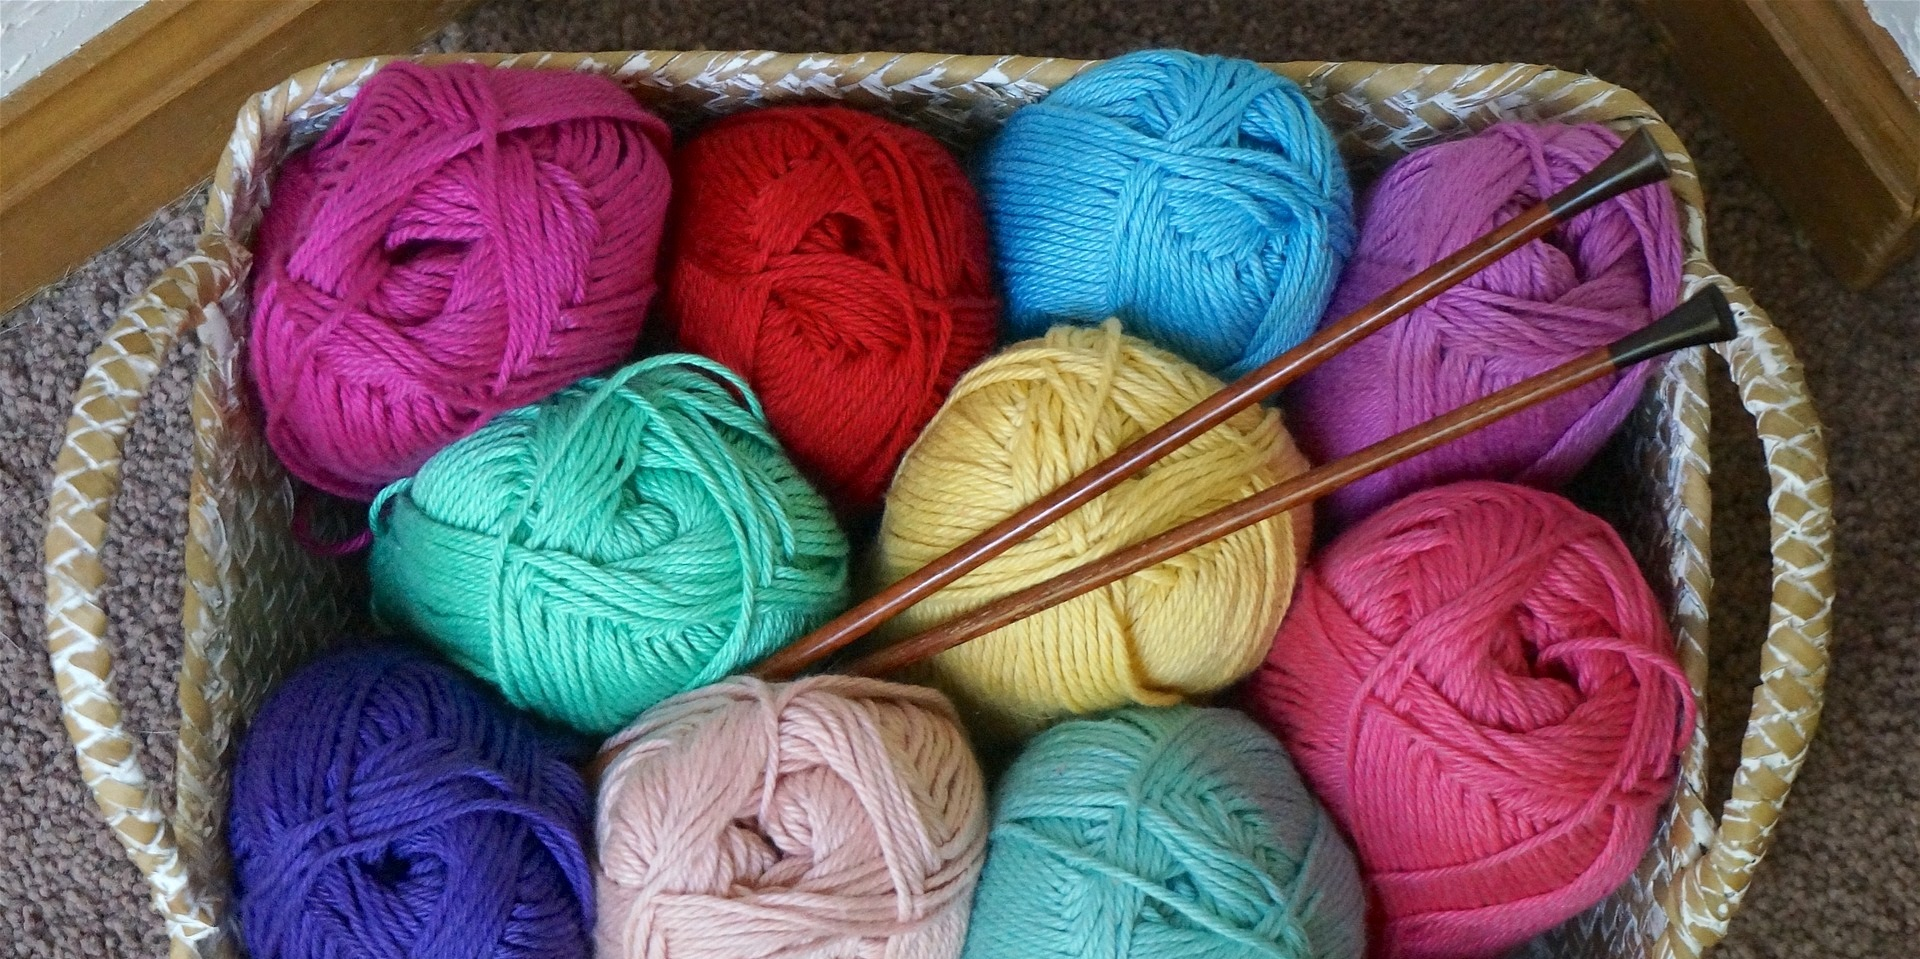 Knitting and yarn